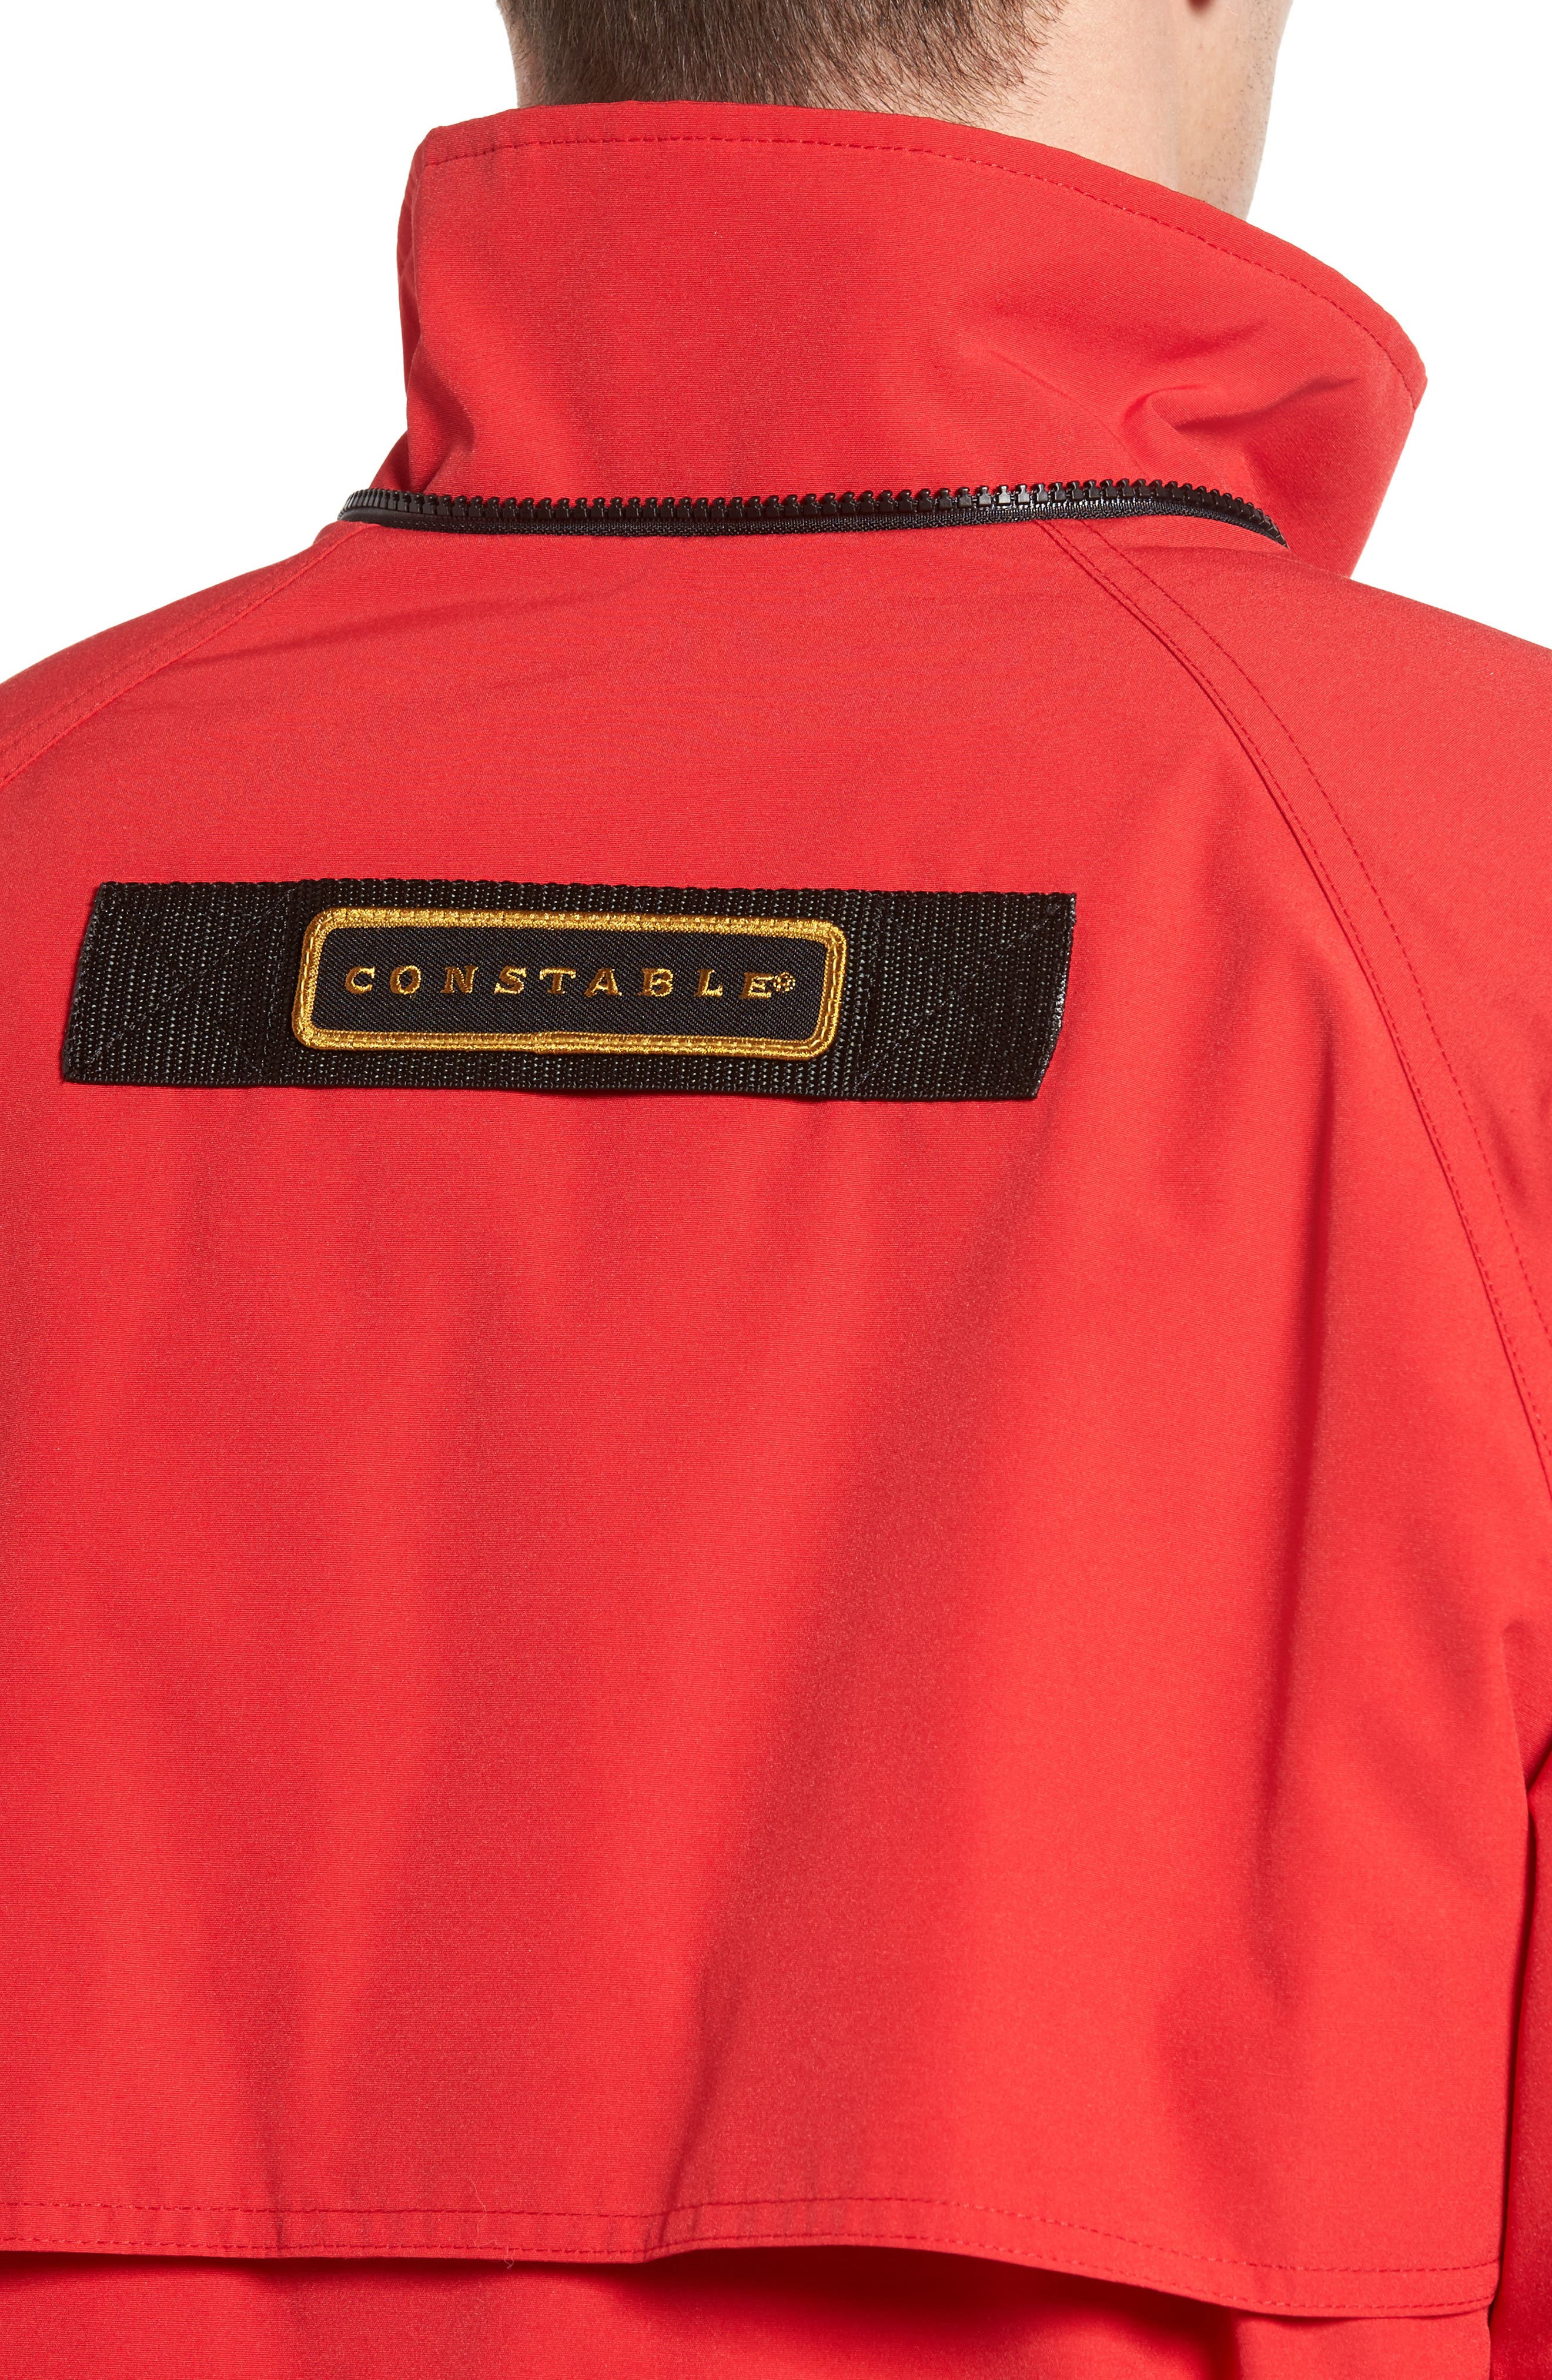 Alternate Image 4  - Canada Goose 'Constable' Regular Fit Water Resistant Down Parka